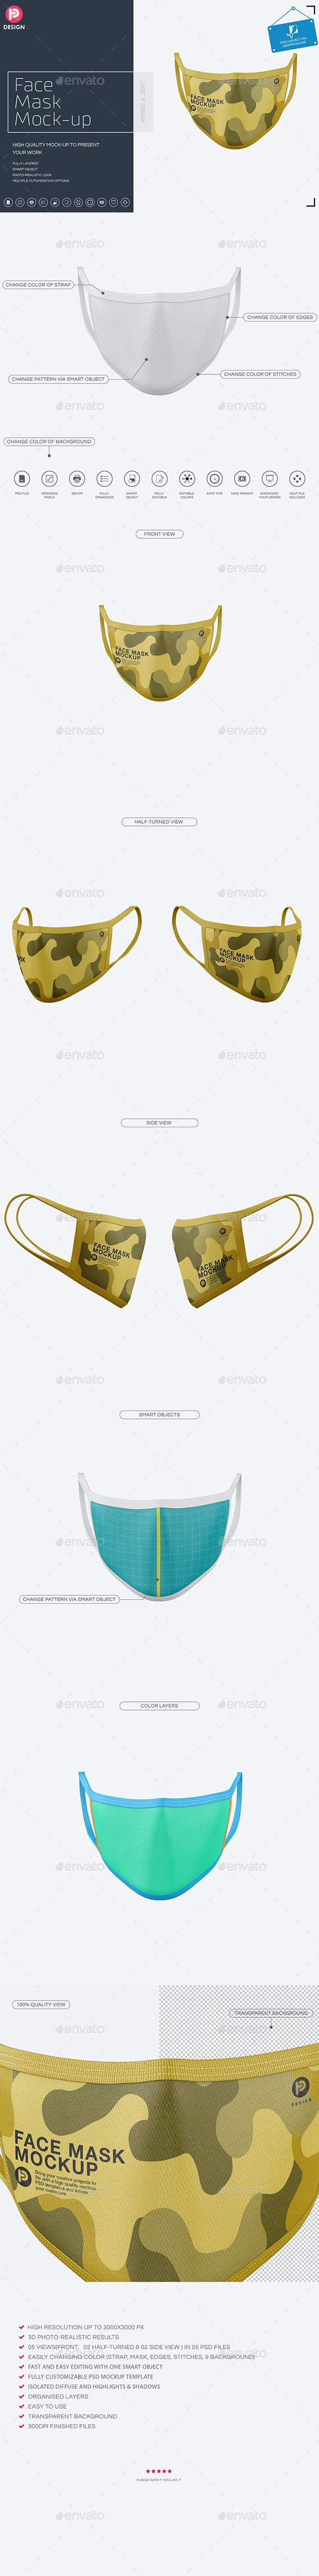 Face Mask Mockup - Miscellaneous Product Mock-Ups